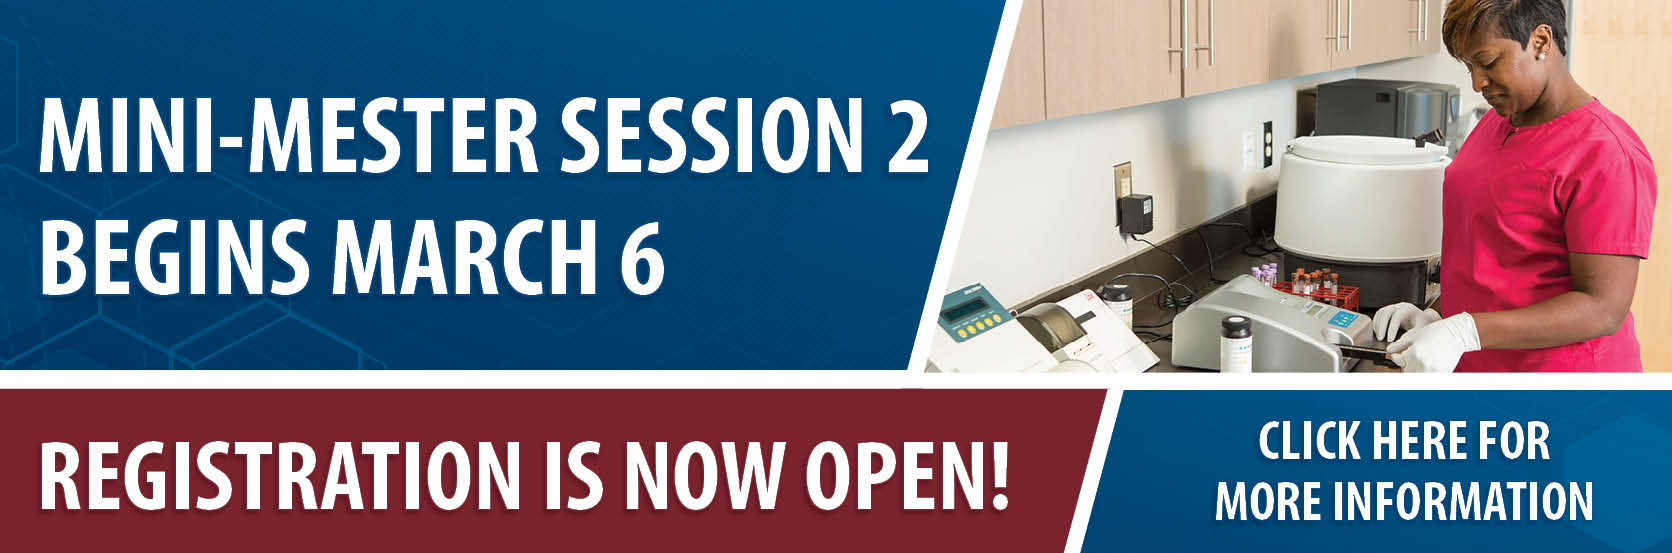 Mini-mester Session 2 Begins March 6. Registration is now open. Click for more information..